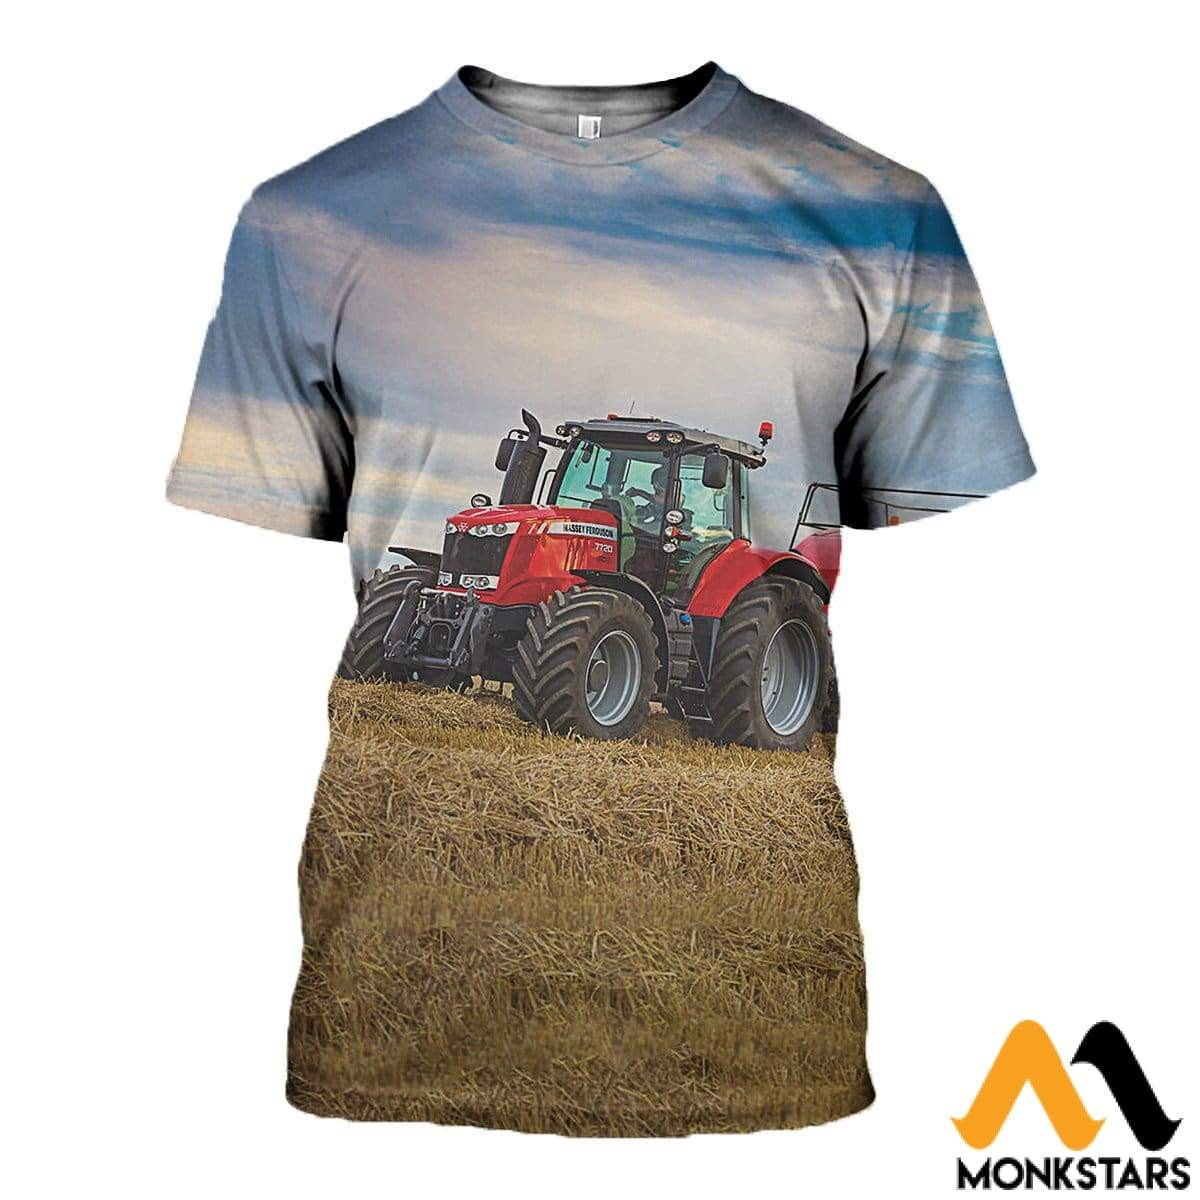 3D All Over Printed Case Ih T-Shirt Hoodie Sntl250410 / Xs Clothes